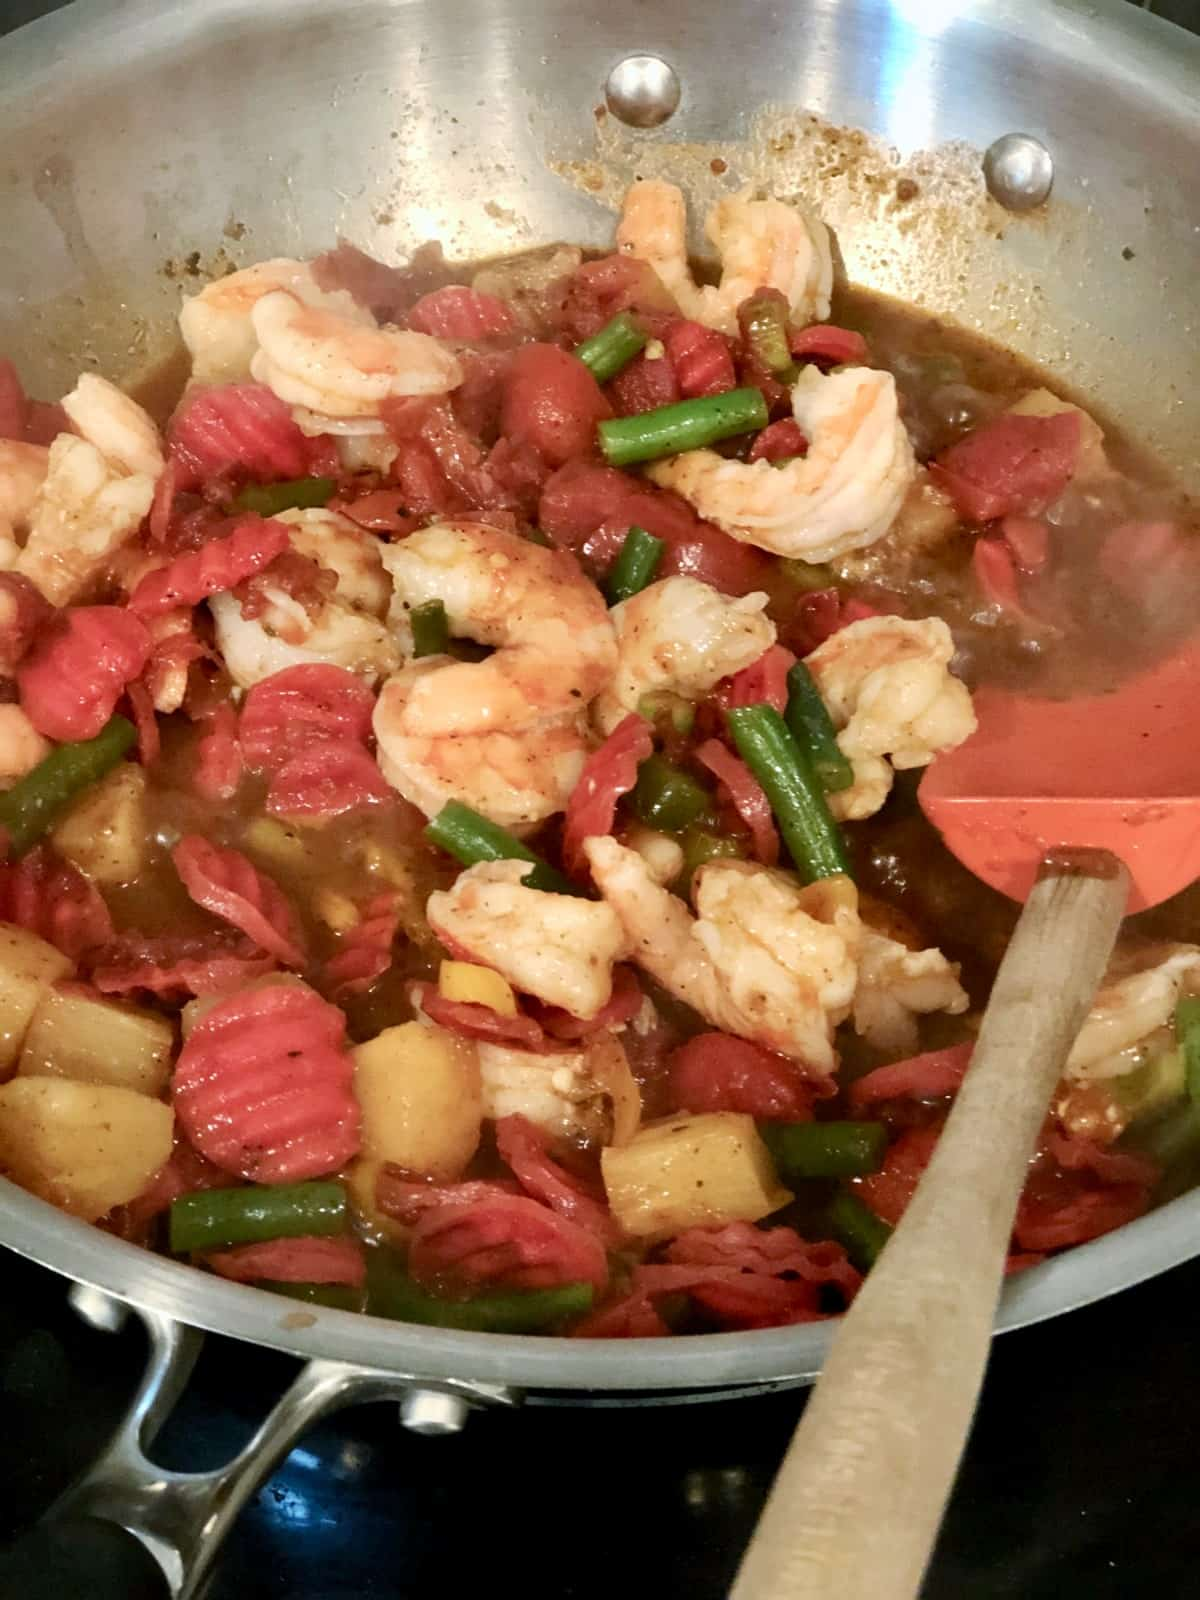 Cooking Caribbean Shrimp and Vegetable Stir Fry in wok with spatula.